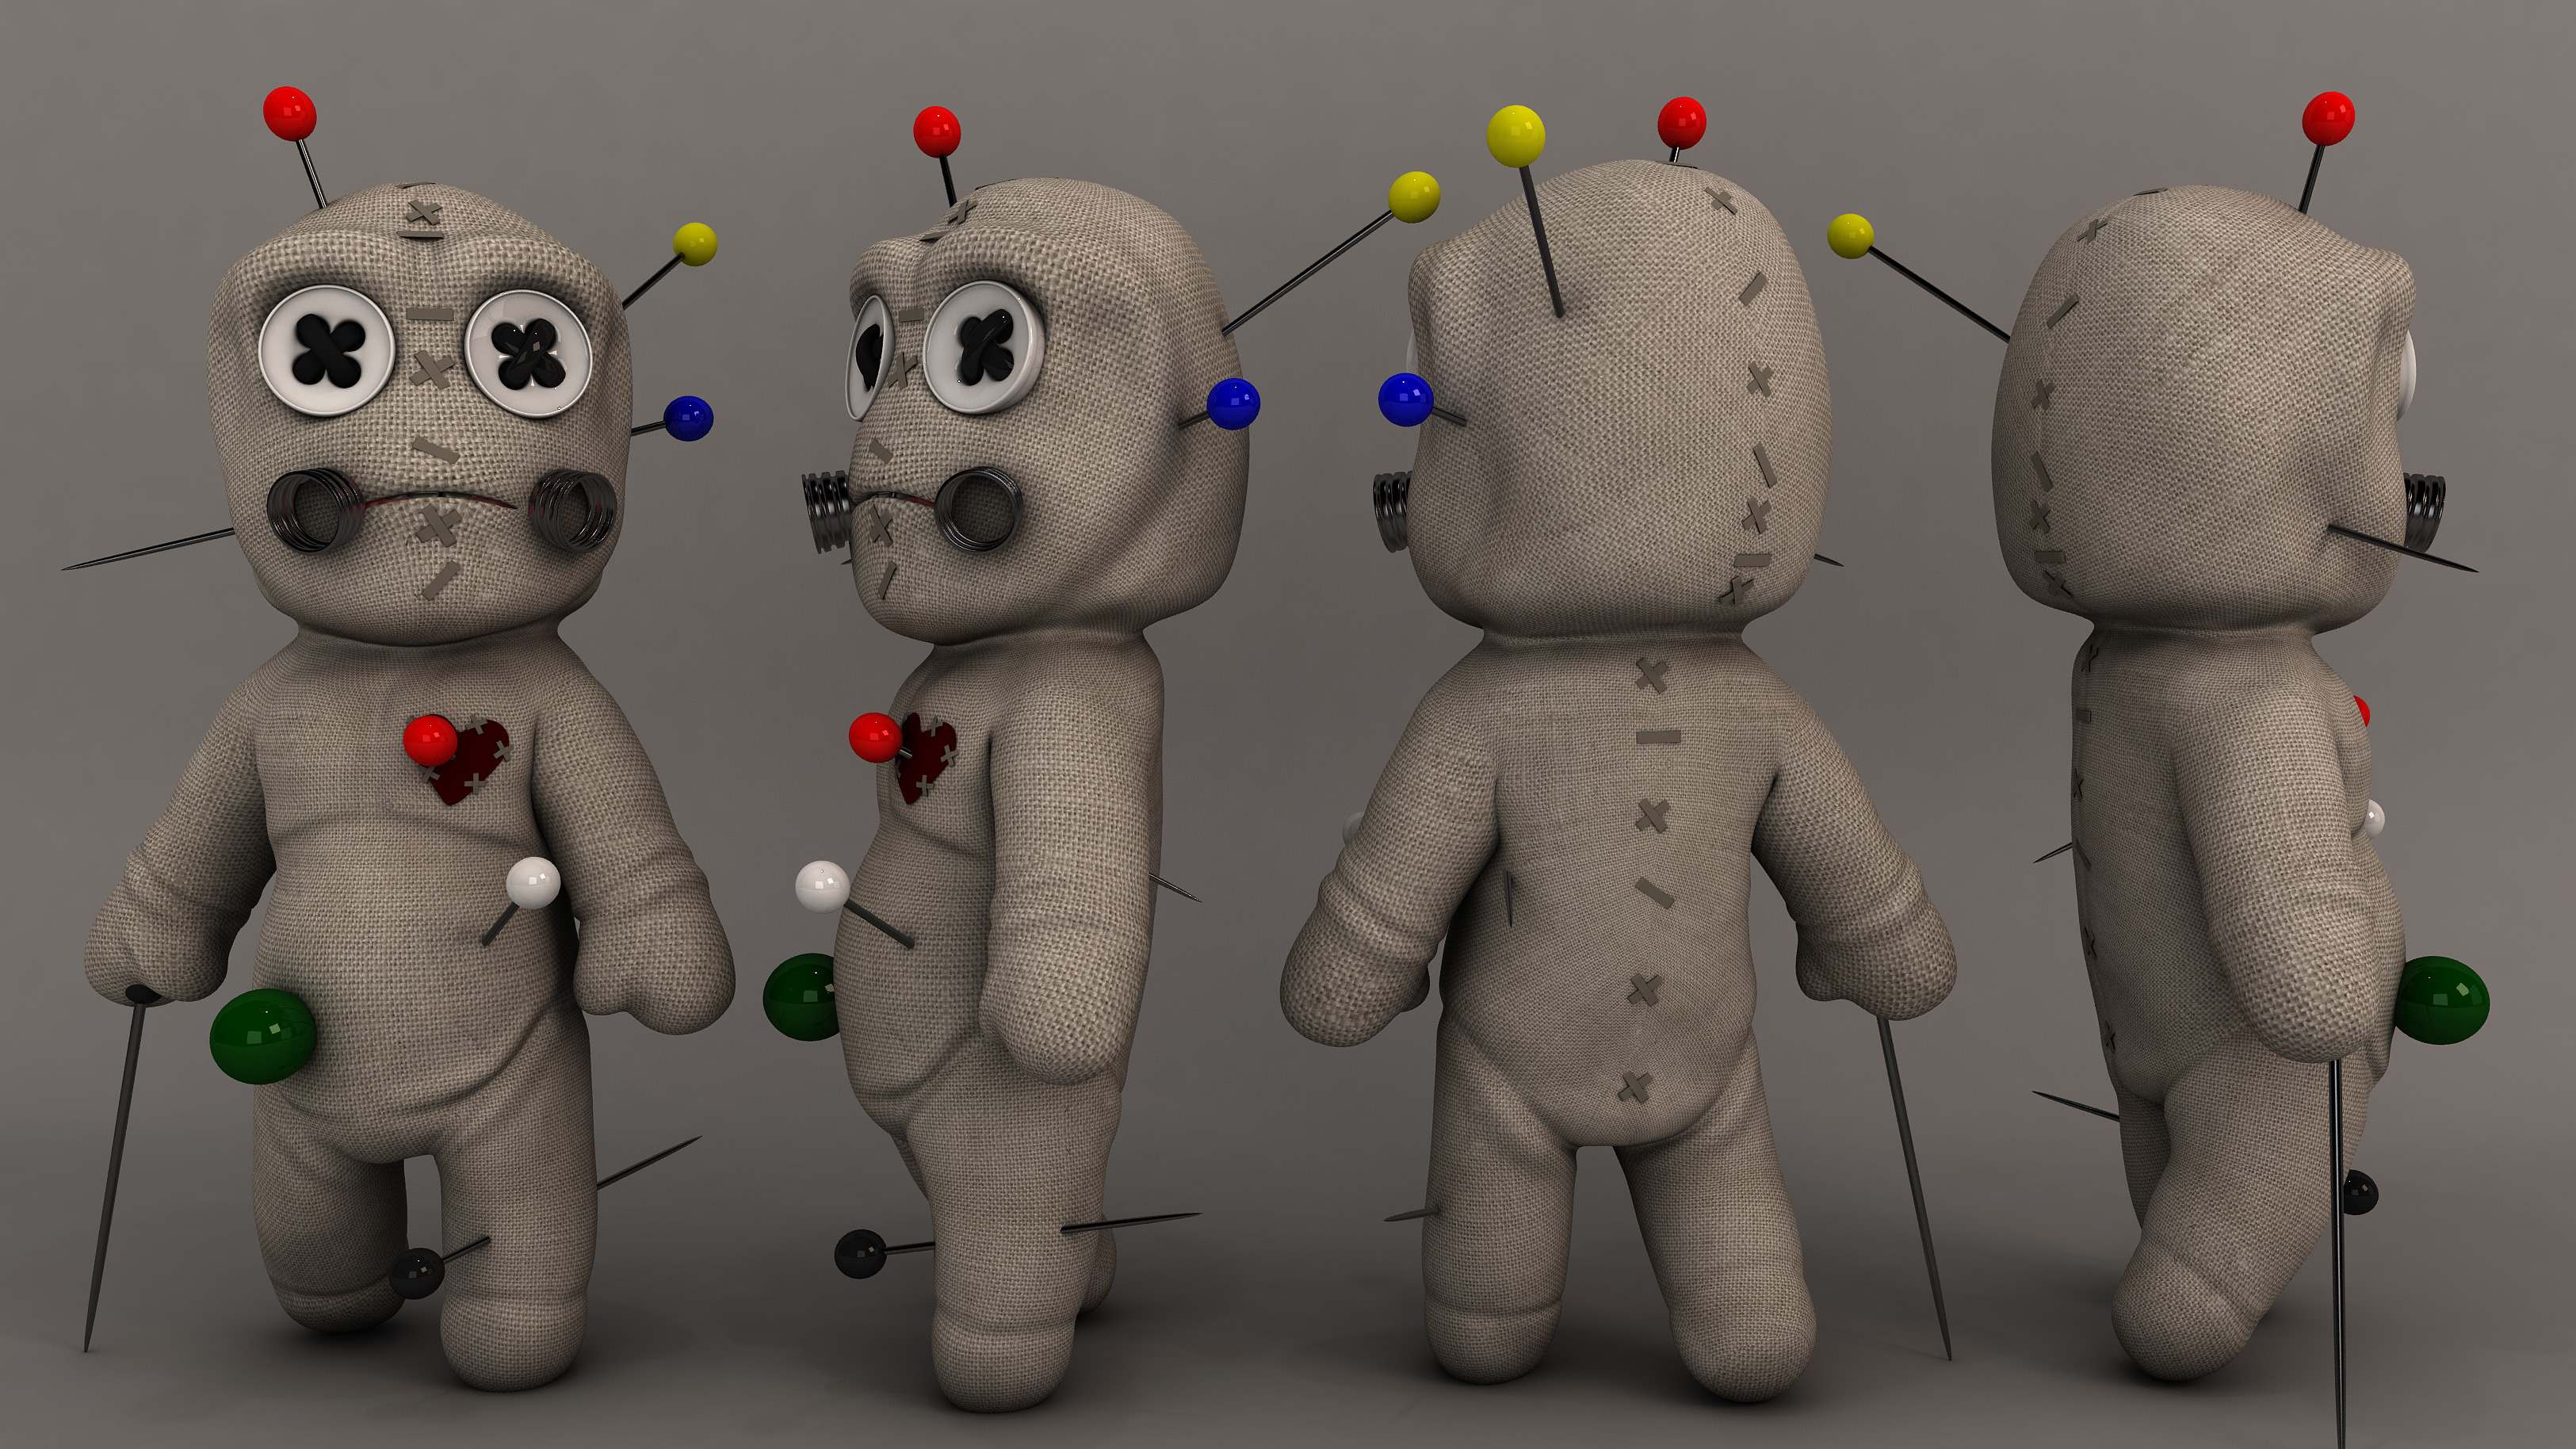 3DOcean VoodooDoll 3D Models -  Fantasy and Fiction  Characters 1952721